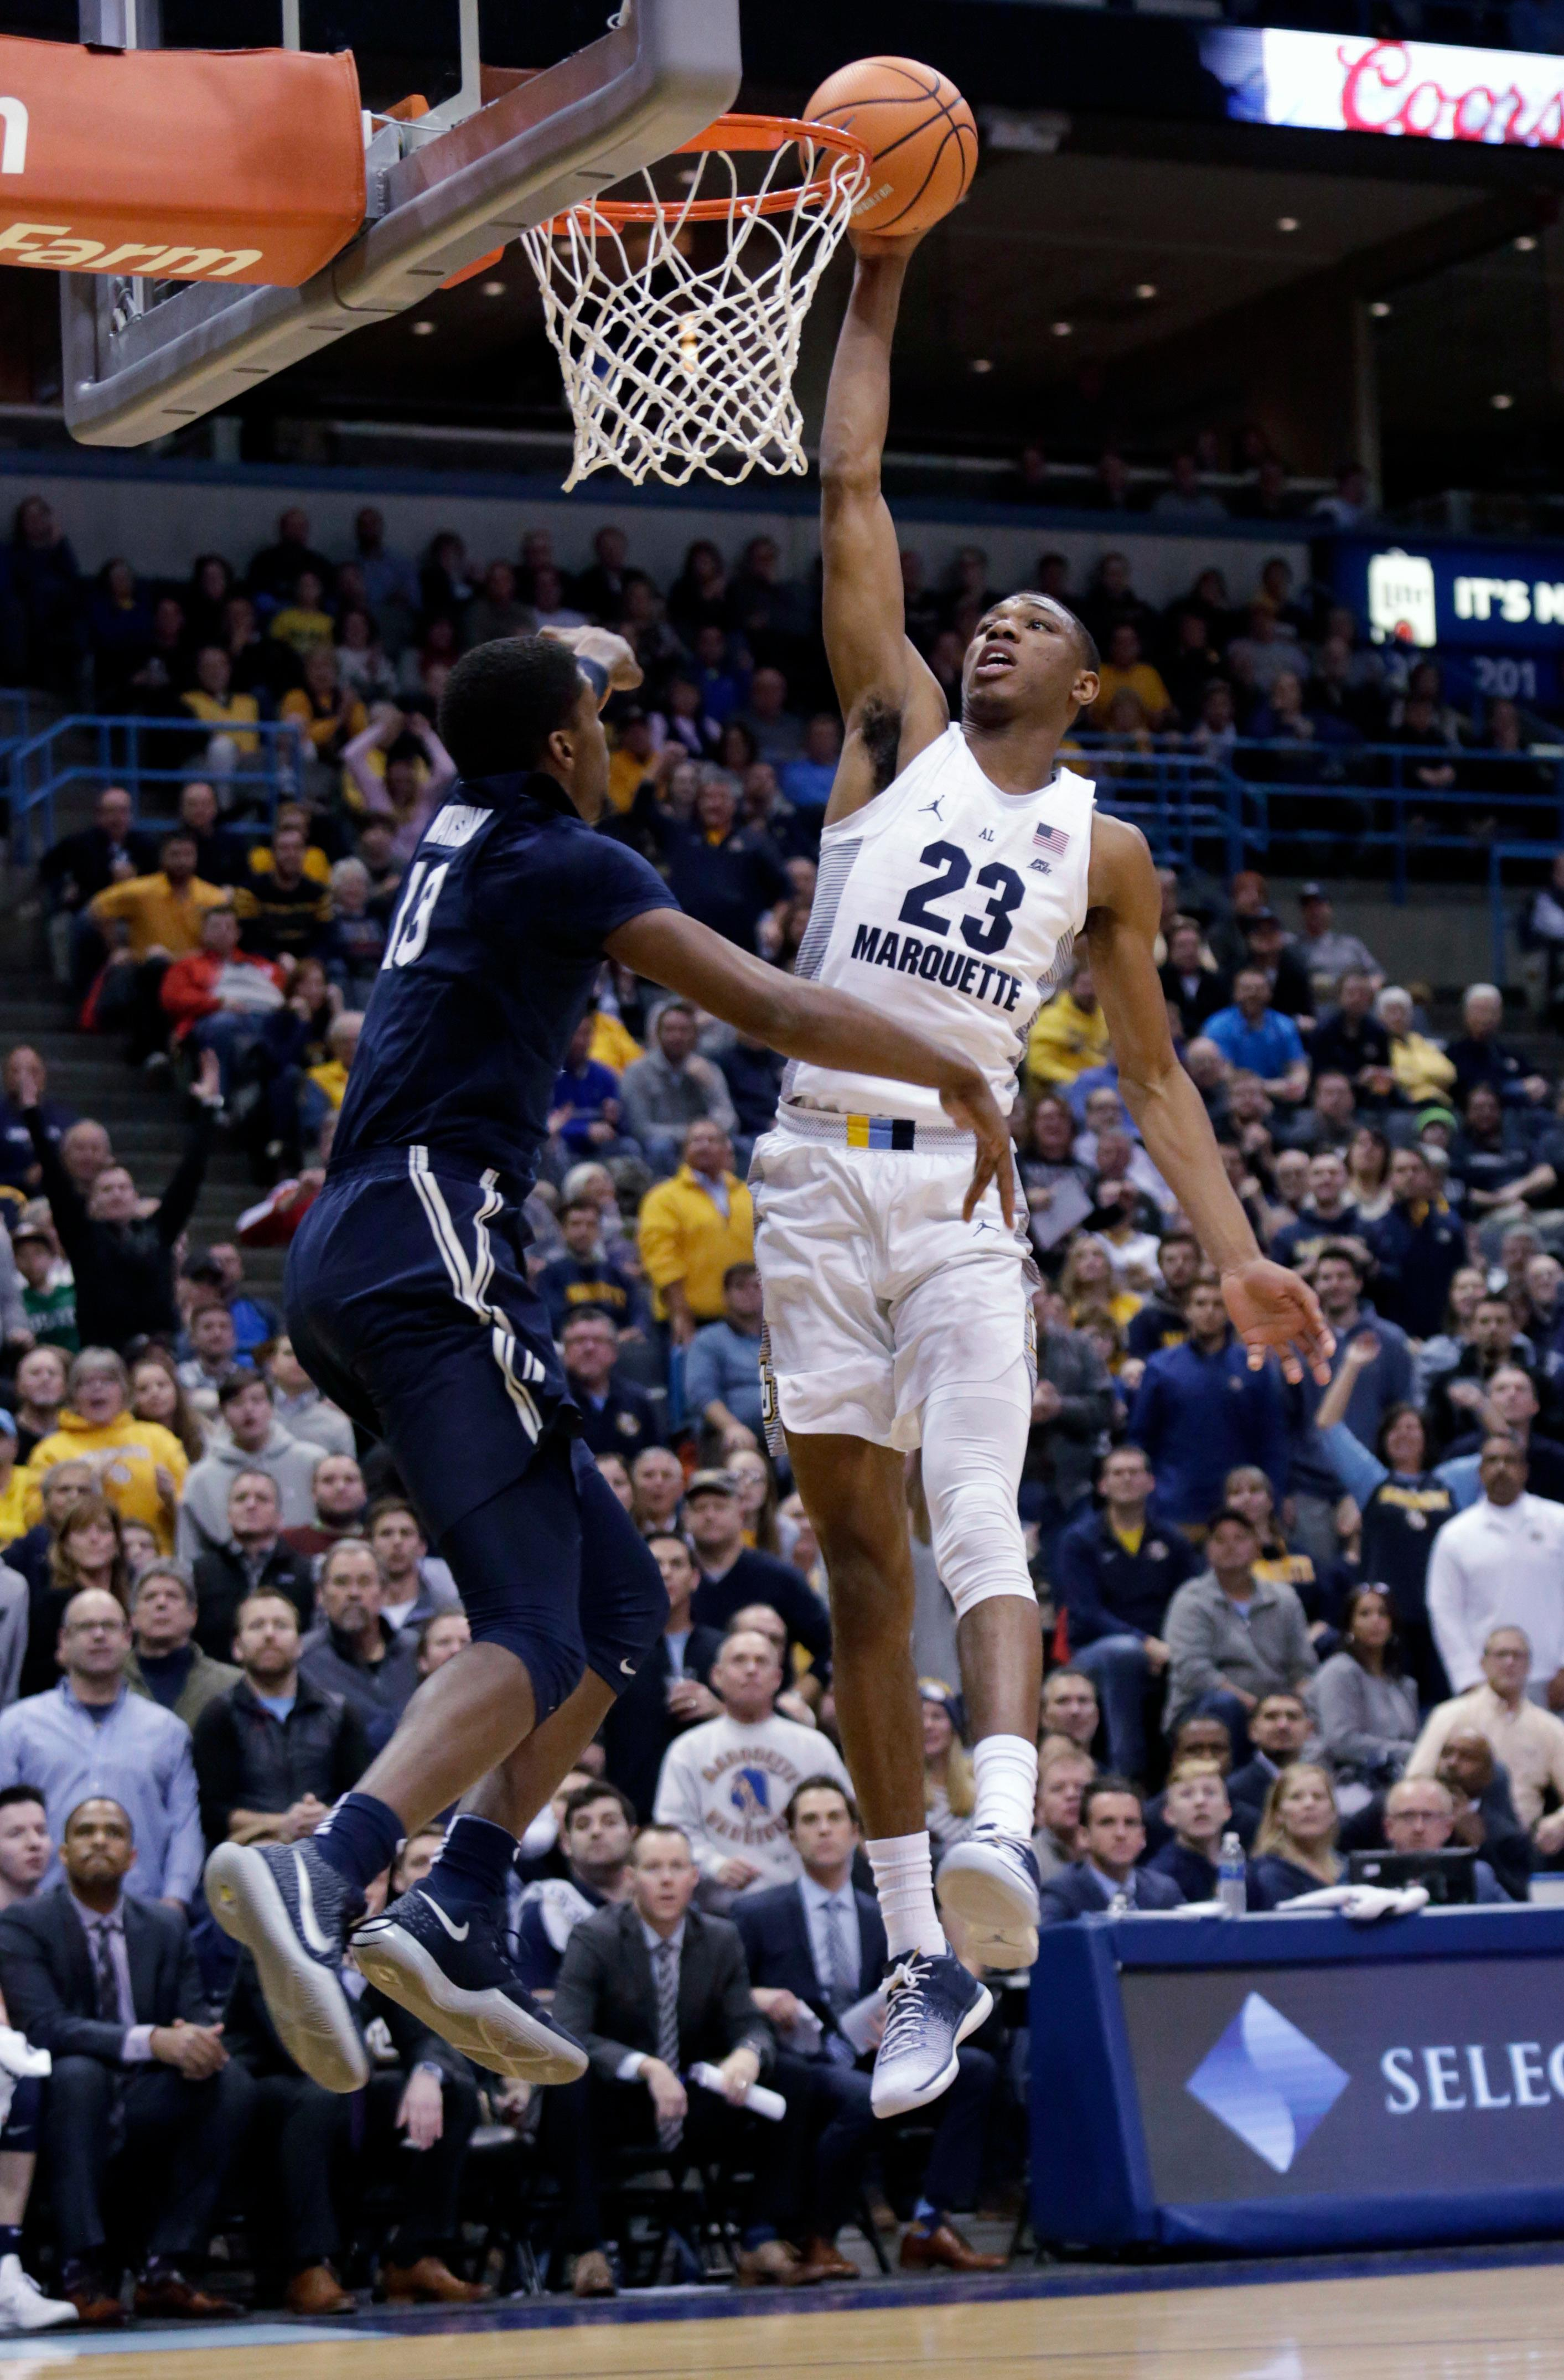 Marquette forward Jamal Cain, right, goes up for a basket agains the defense of Xavier forward Naji Marshall, left, during the first half of a basketball game, Wednesday, Dec. 27, 2017, in Milwaukee. (AP Photo/Darren Hauck)